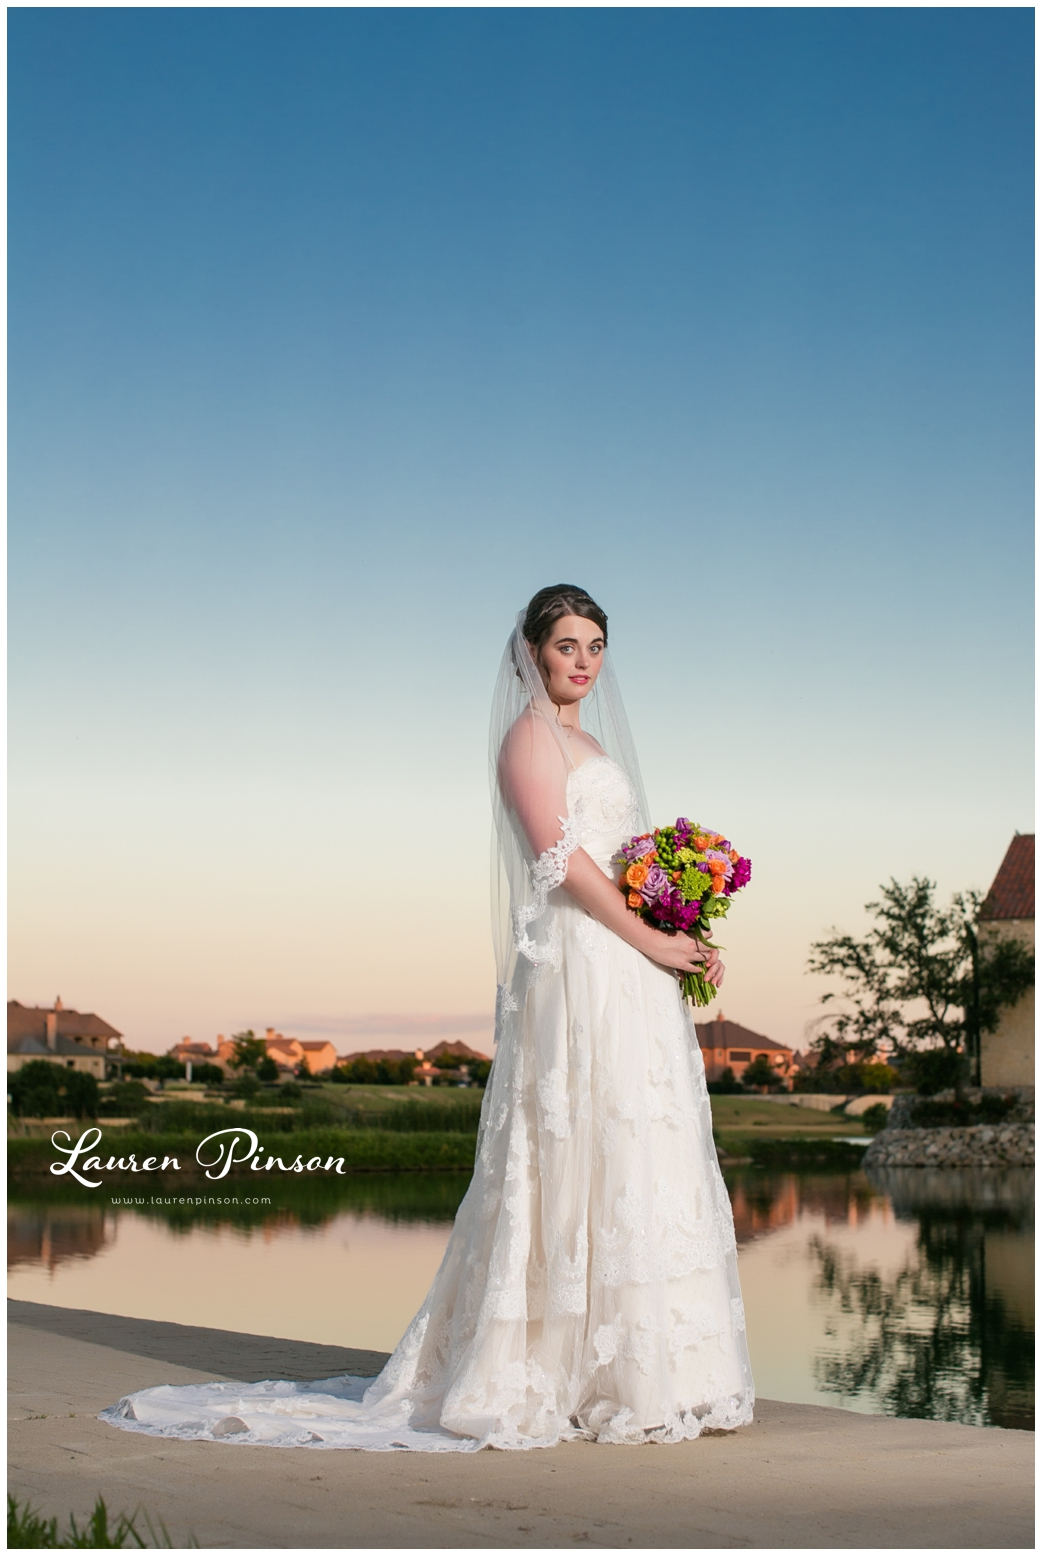 adriactica-village-bella-donna-chapel-mckinney-texas-wedding-photographer-sherman-northtexas-bridal-portraits-photography_0199.jpg